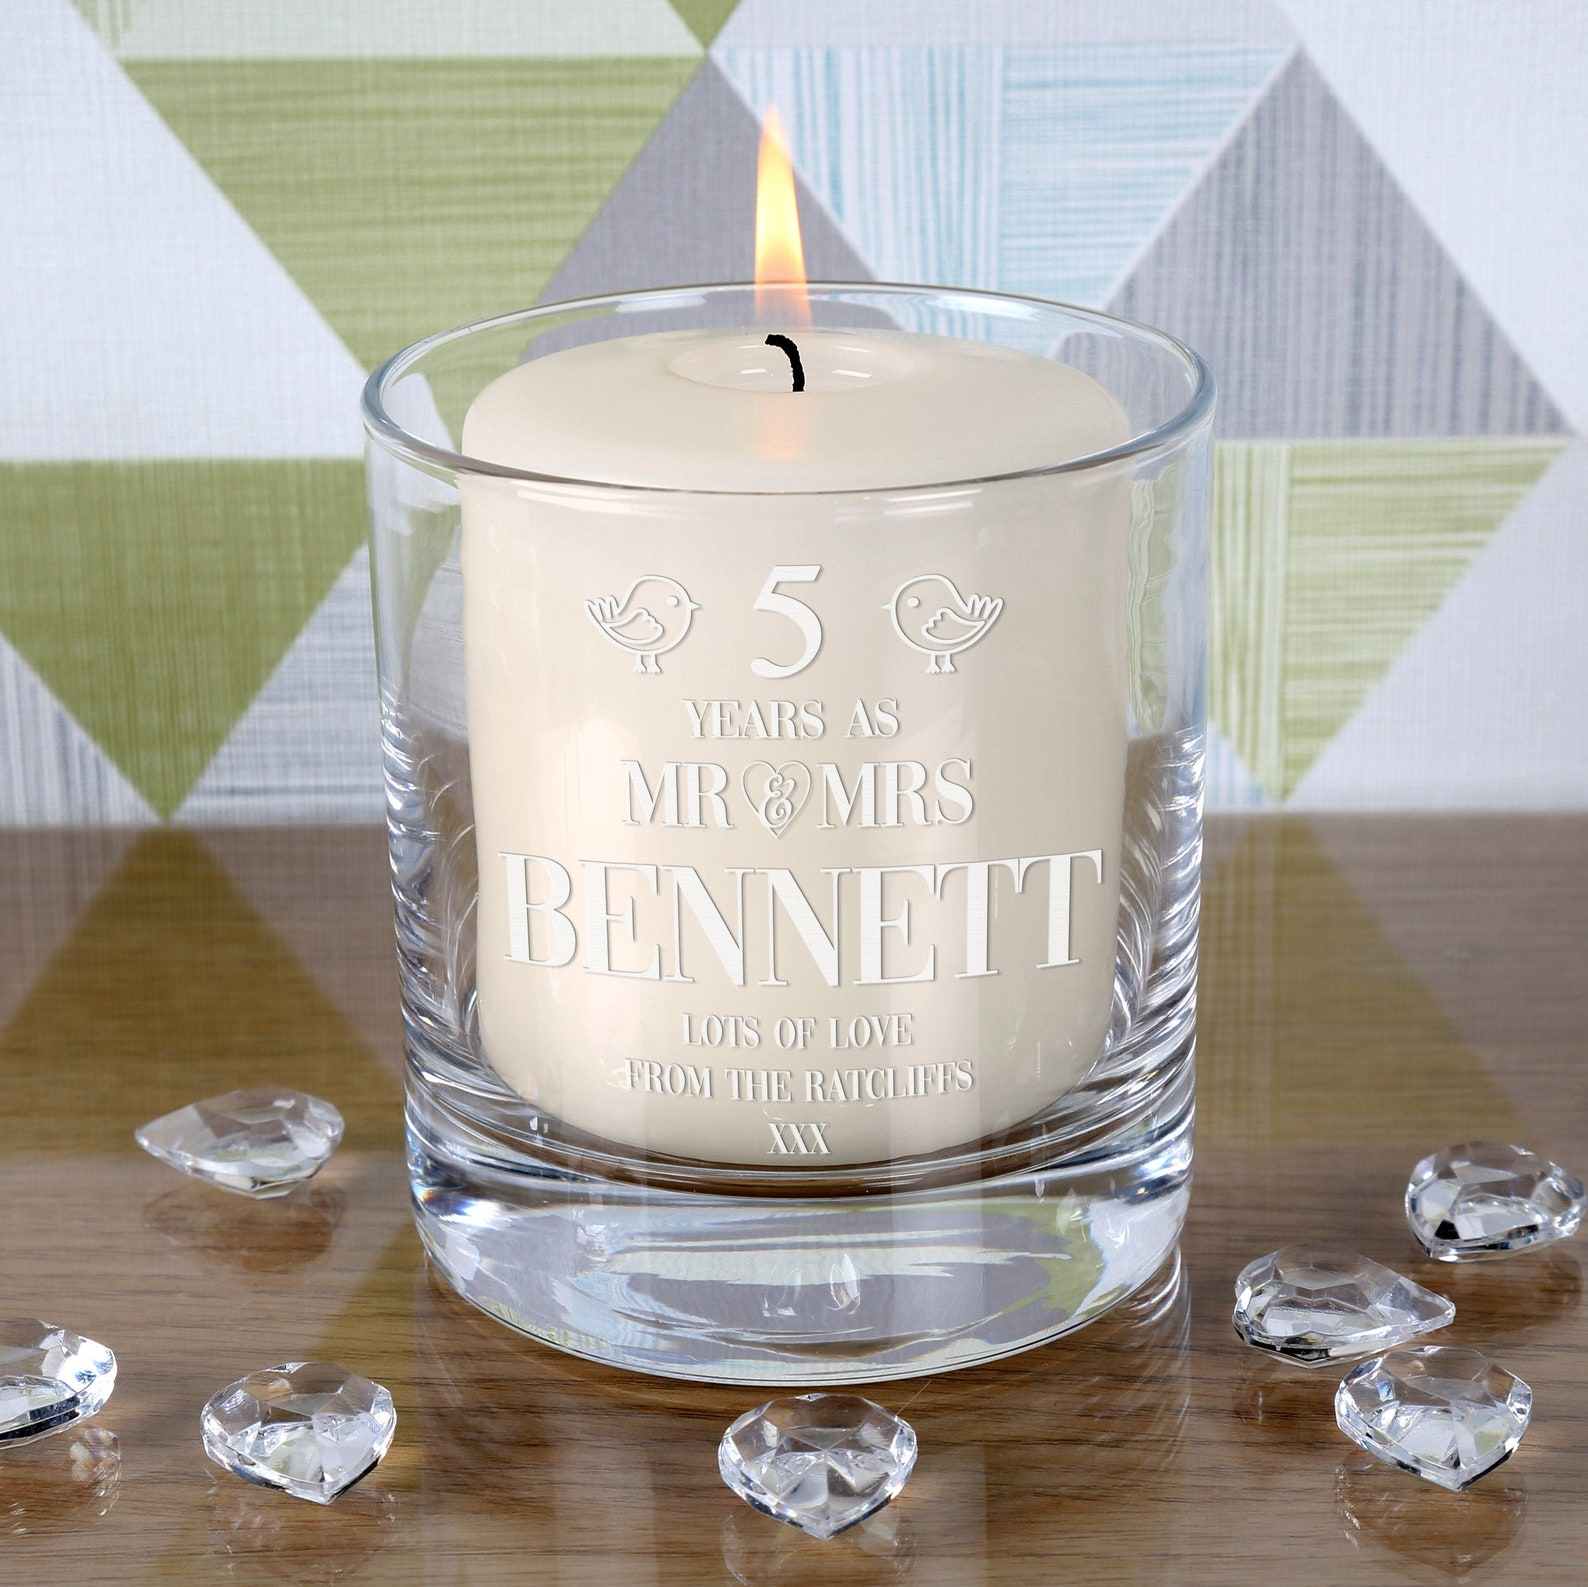 Engraved personalised anniversary candle